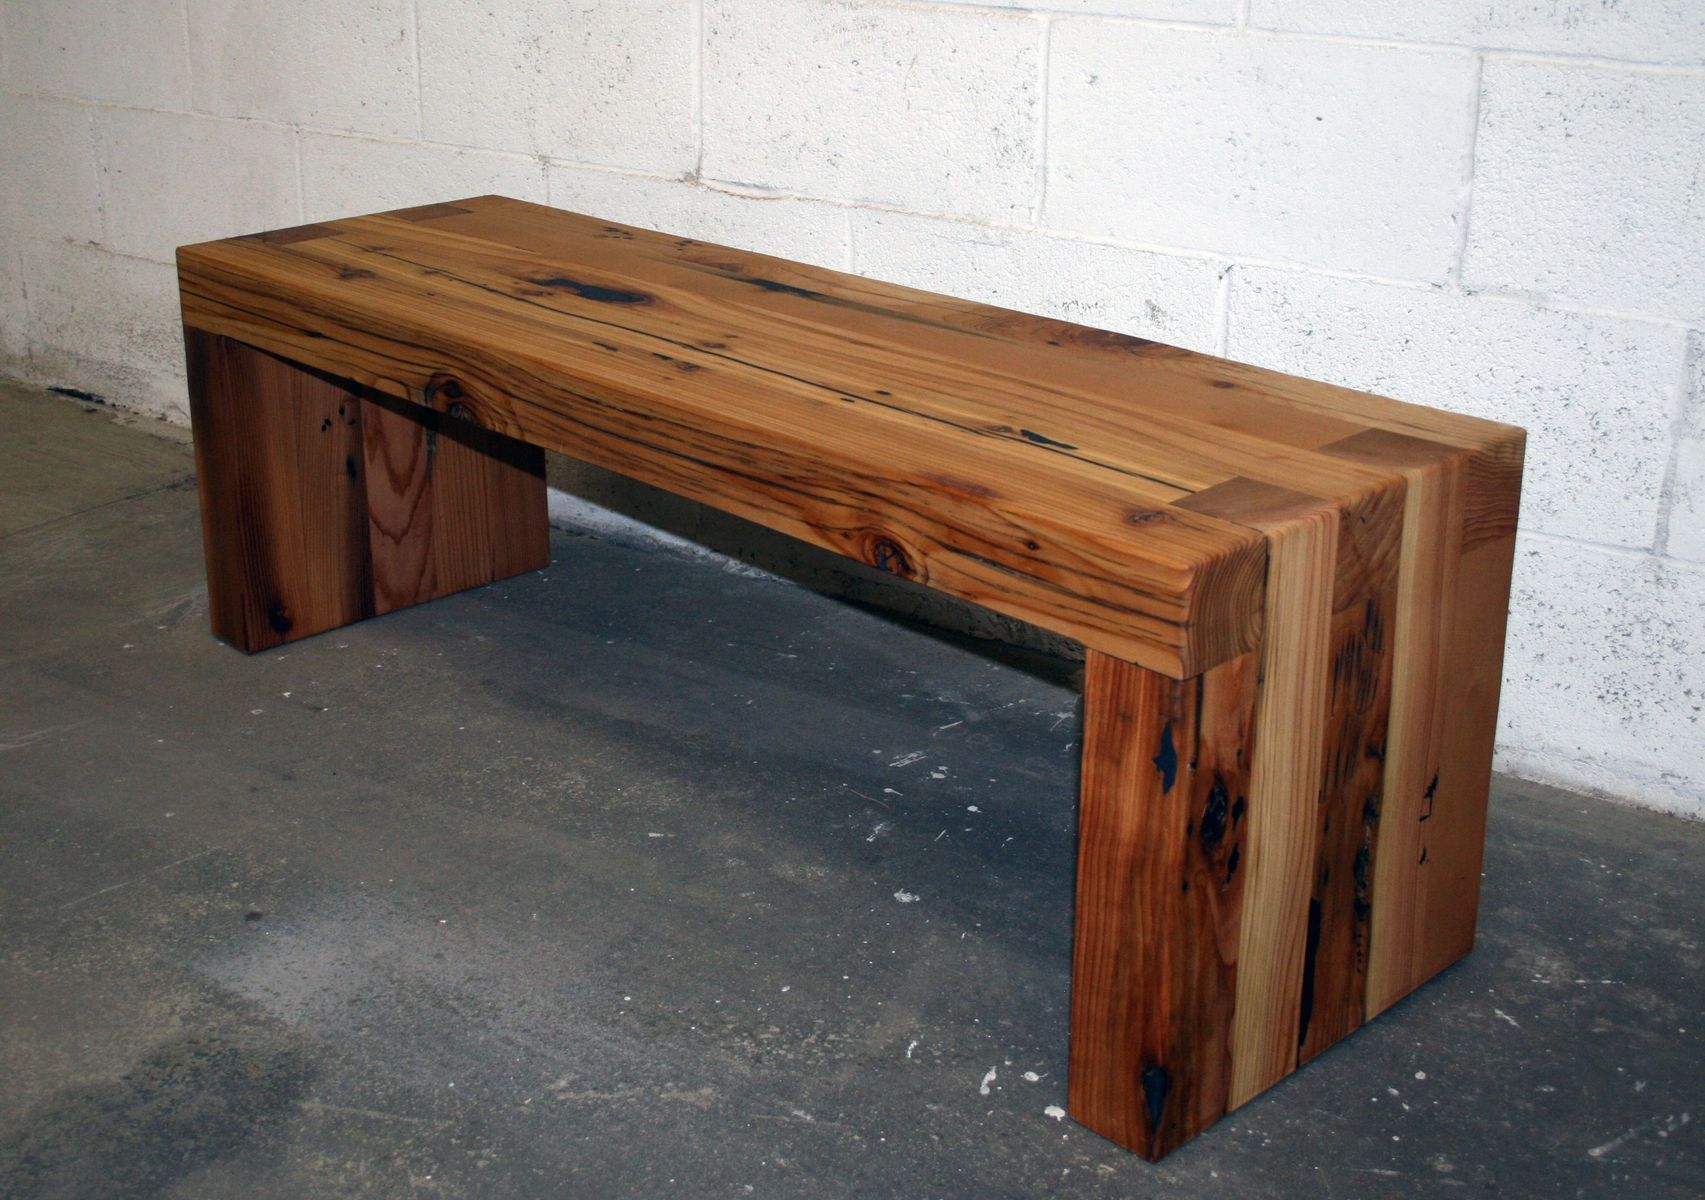 Hand made reclaimed cedar box joint bench coffee table by historicwoods by lunarcanyon custommade com